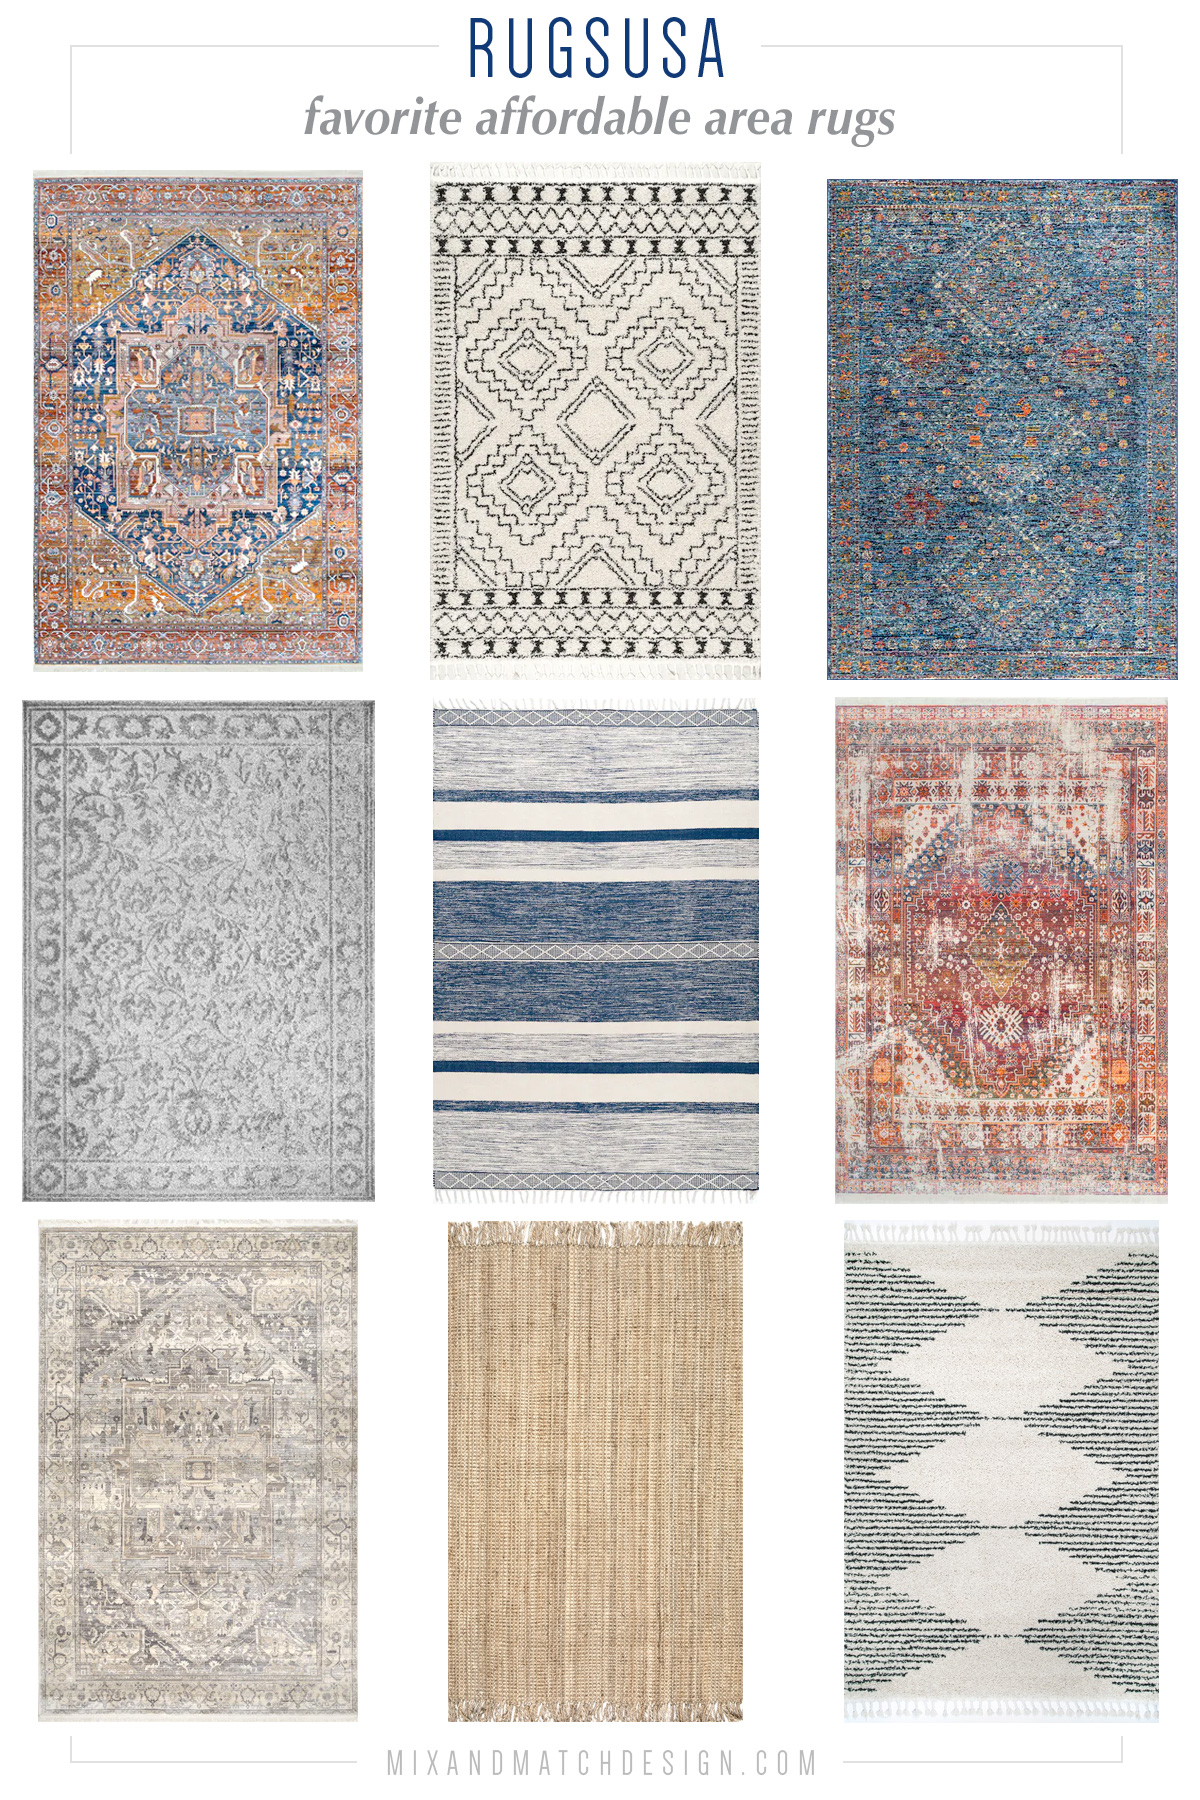 Looking for an affordable area rug? RugsUSA has a great selection of budget-friendly rugs in lots of styles - from Persian-style, to coastal, to traditional, to boho. Click the image to take a look and get all the sources!